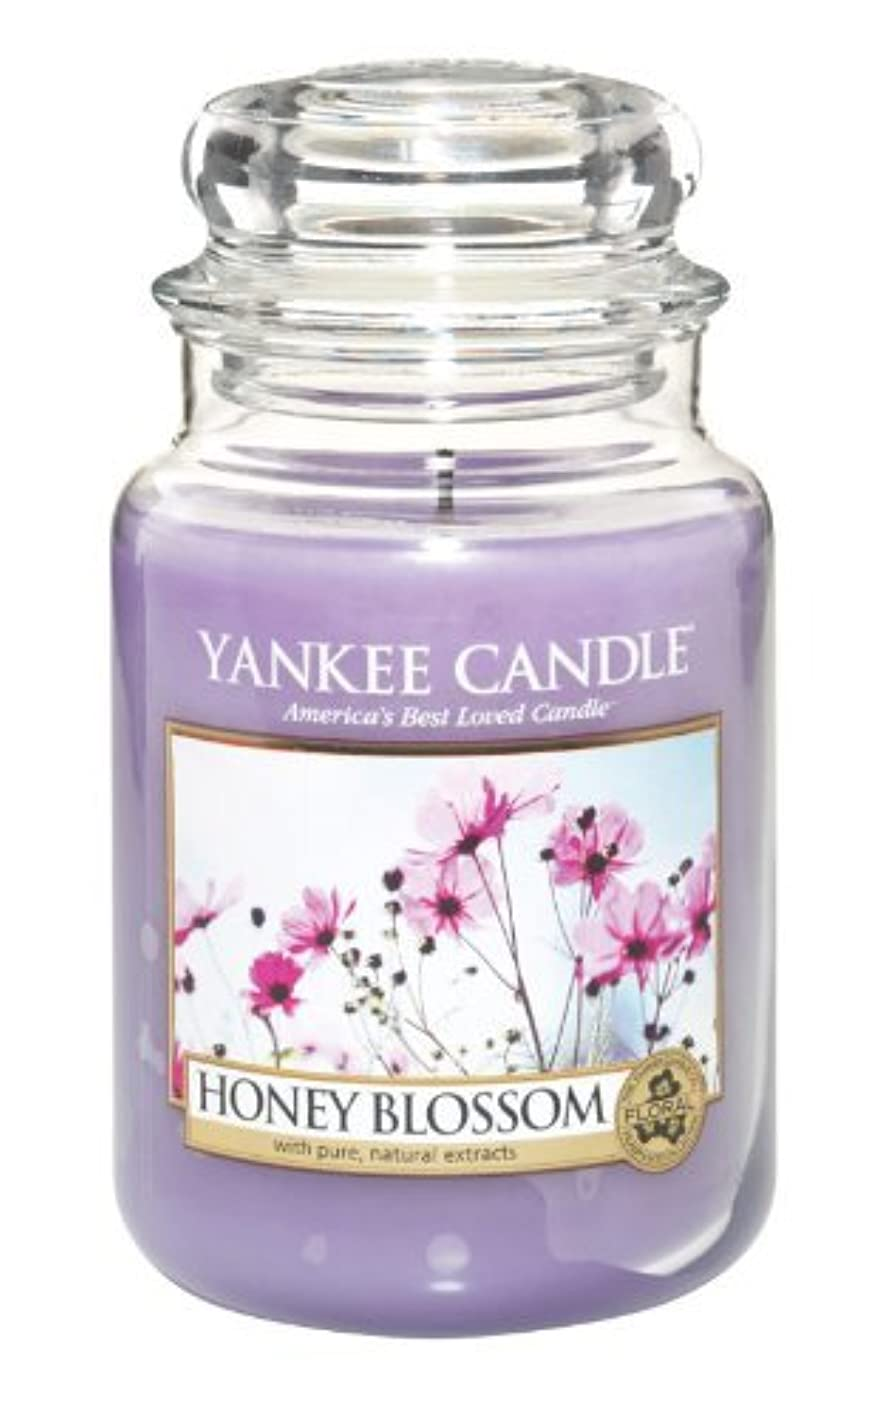 何よりも用心サイバースペースYankee Candle Honey Blossom 22-Ounce Jar Candle, Large by Yankee Candle [並行輸入品]